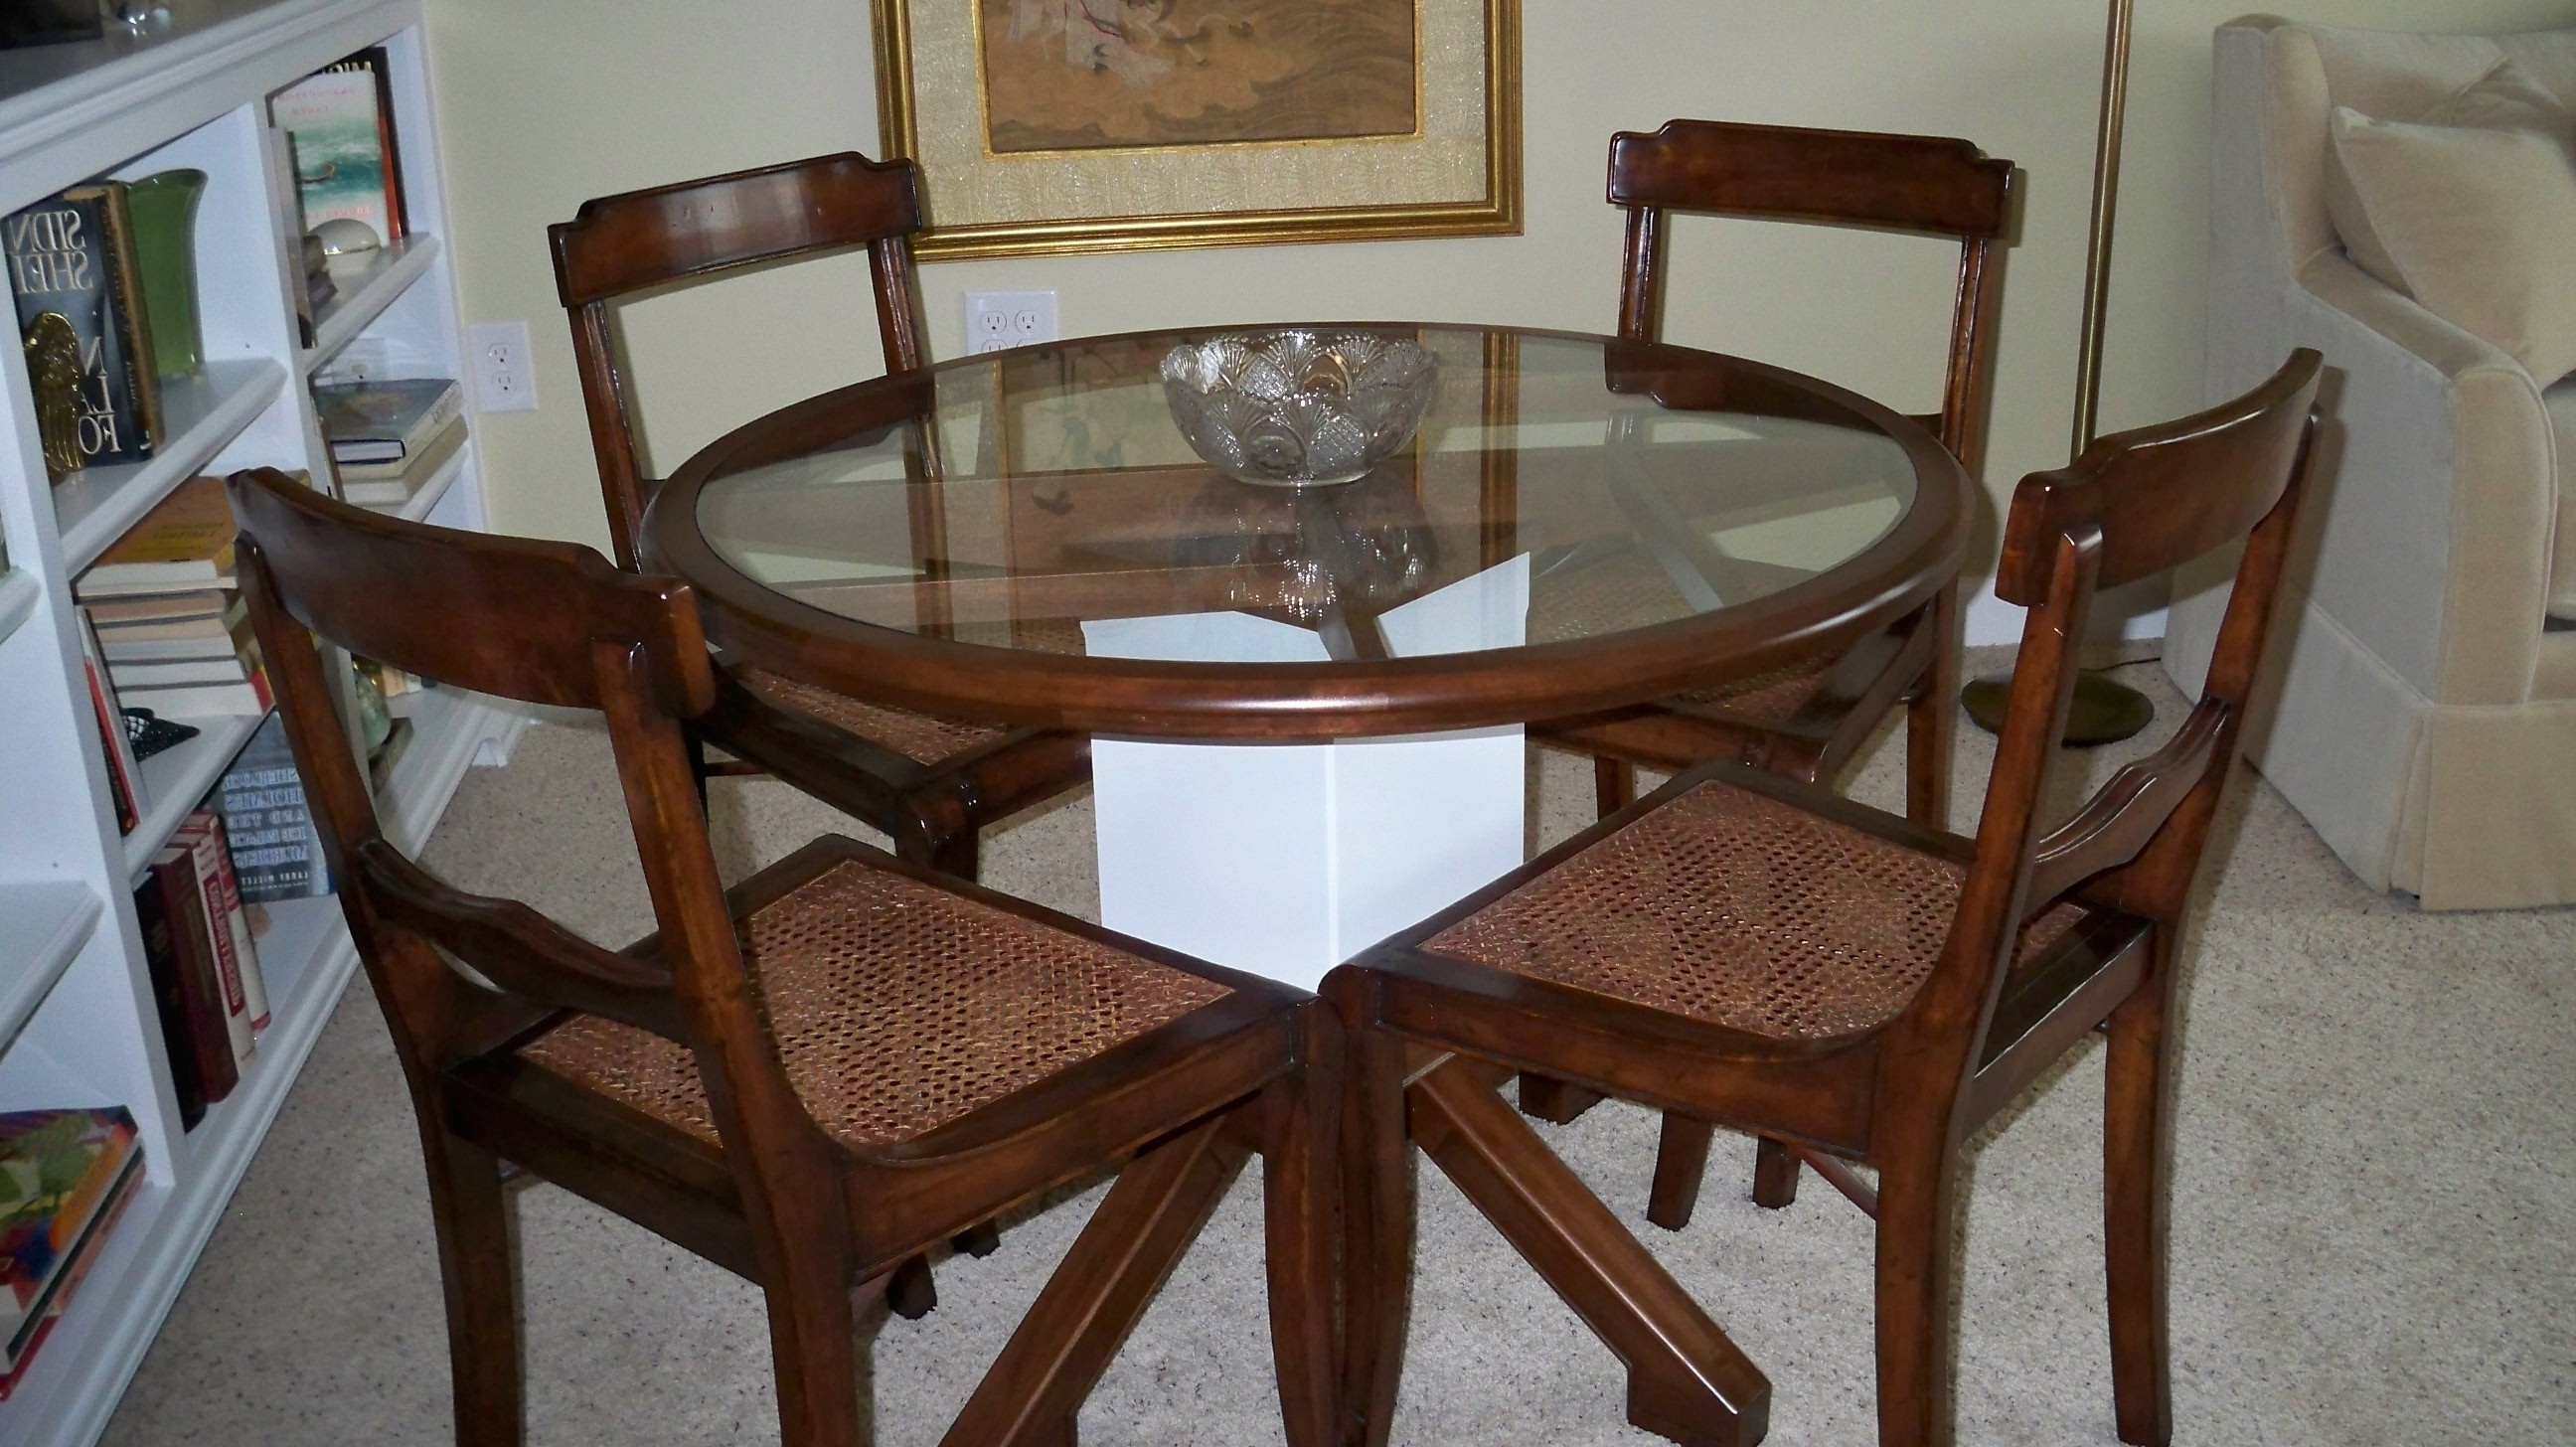 Glass Dining Tables With Wooden Legs In Most Recently Released Round Glass Table With Brown Wooden Frame And White Wooden Legs (Gallery 12 of 25)